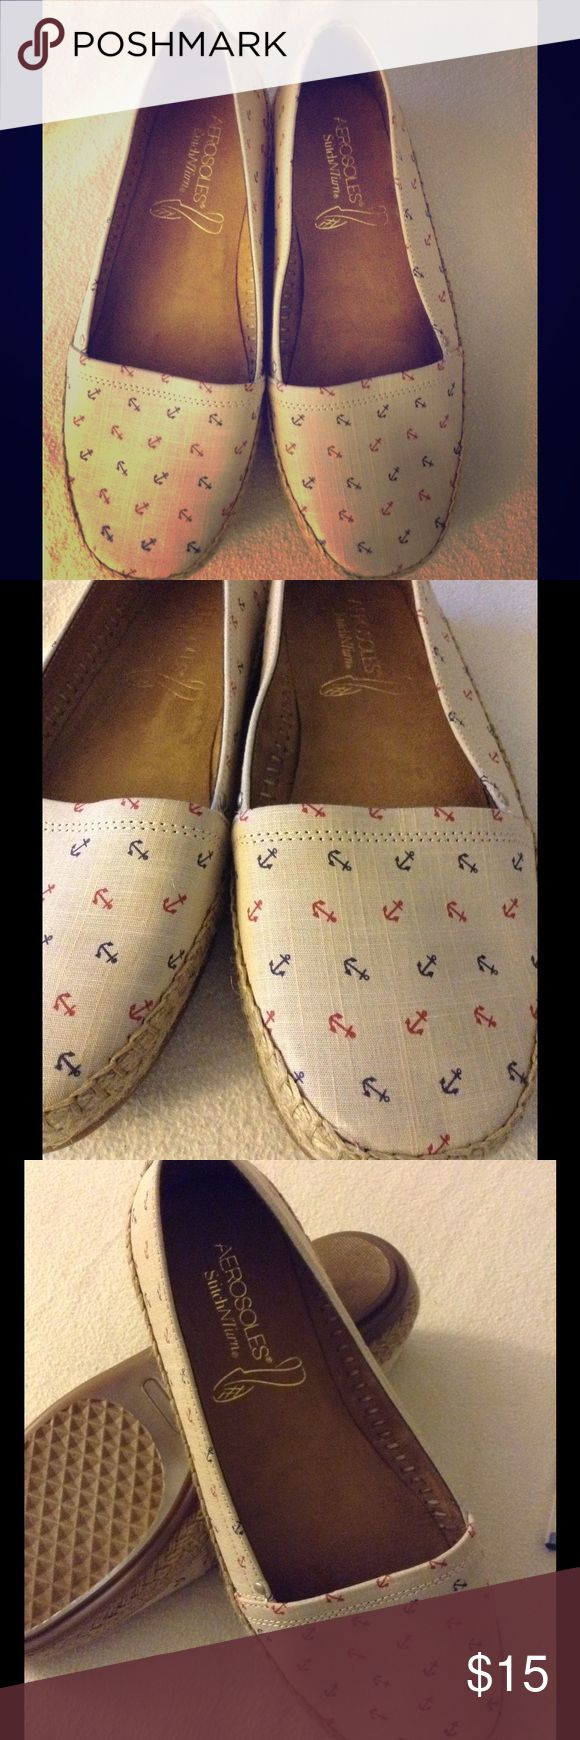 Aerosoles cute anchor shoes These aerosoles are tan in color with blue and red anchors AEROSOLES Shoes Flats & Loafers